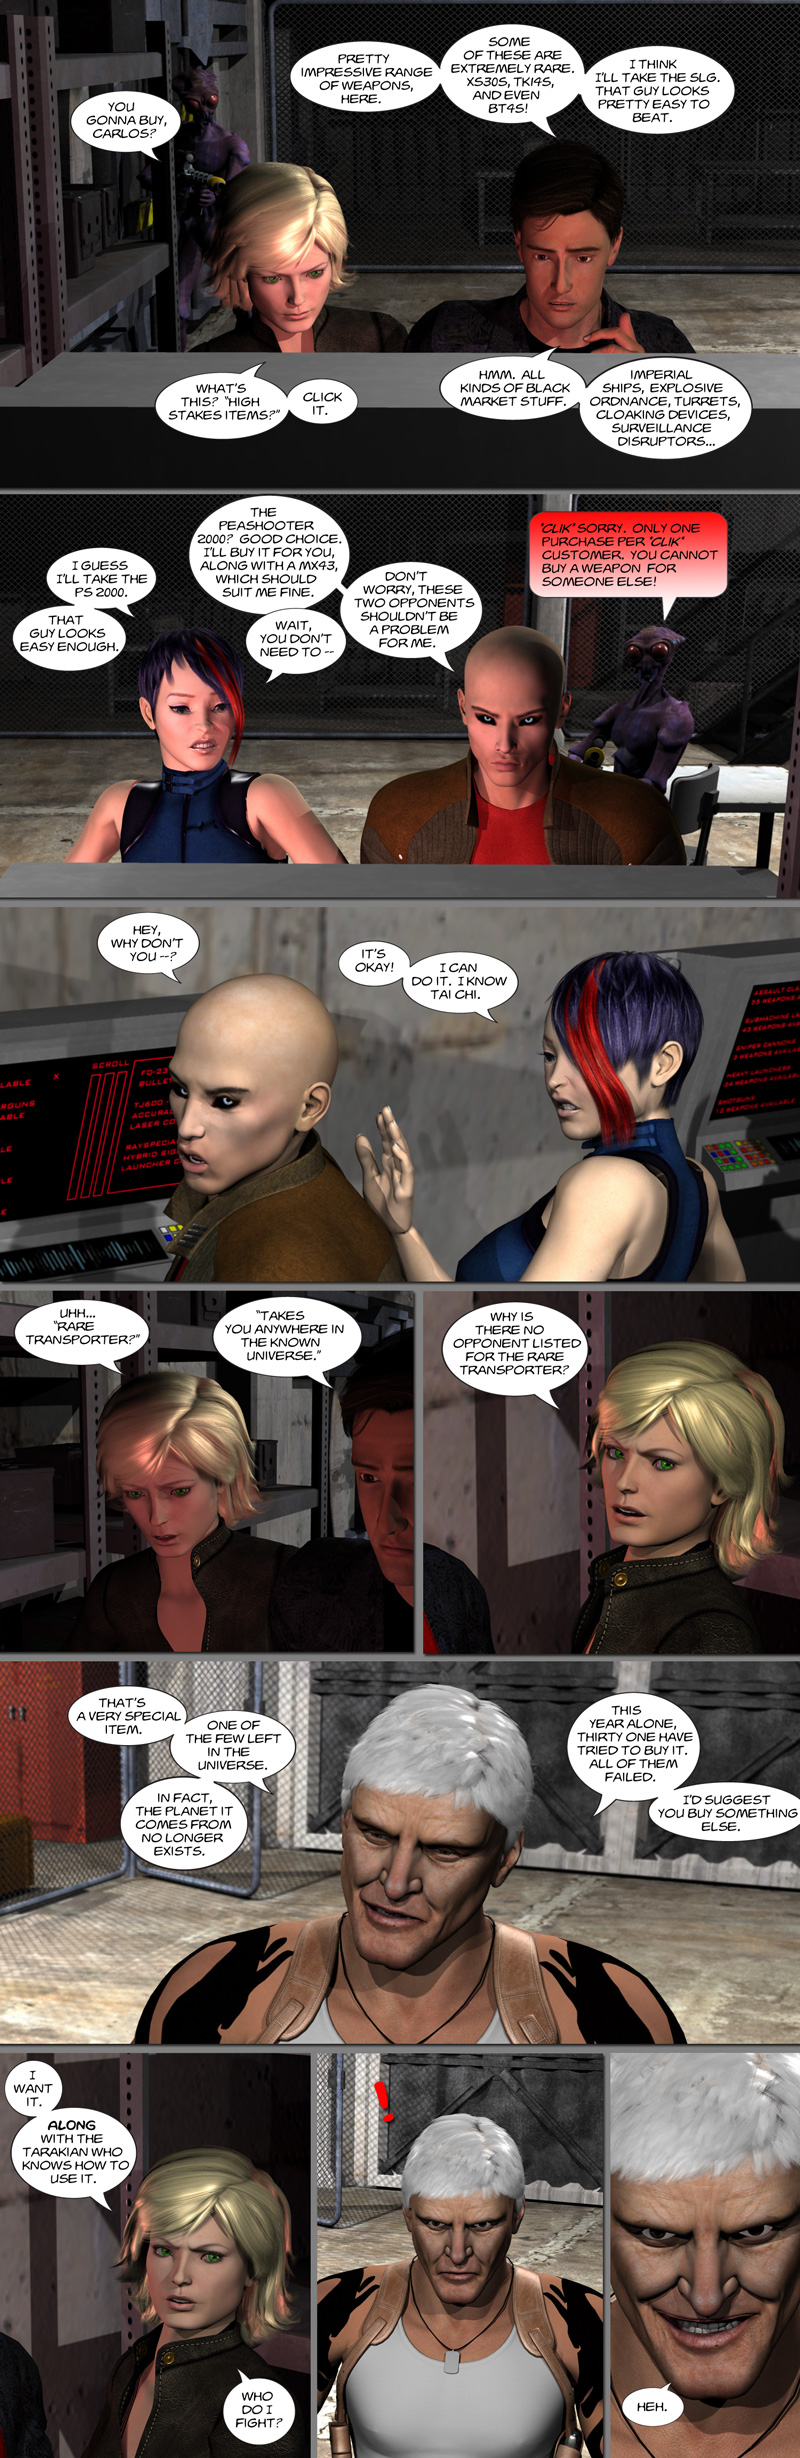 Chapter 8, page 24